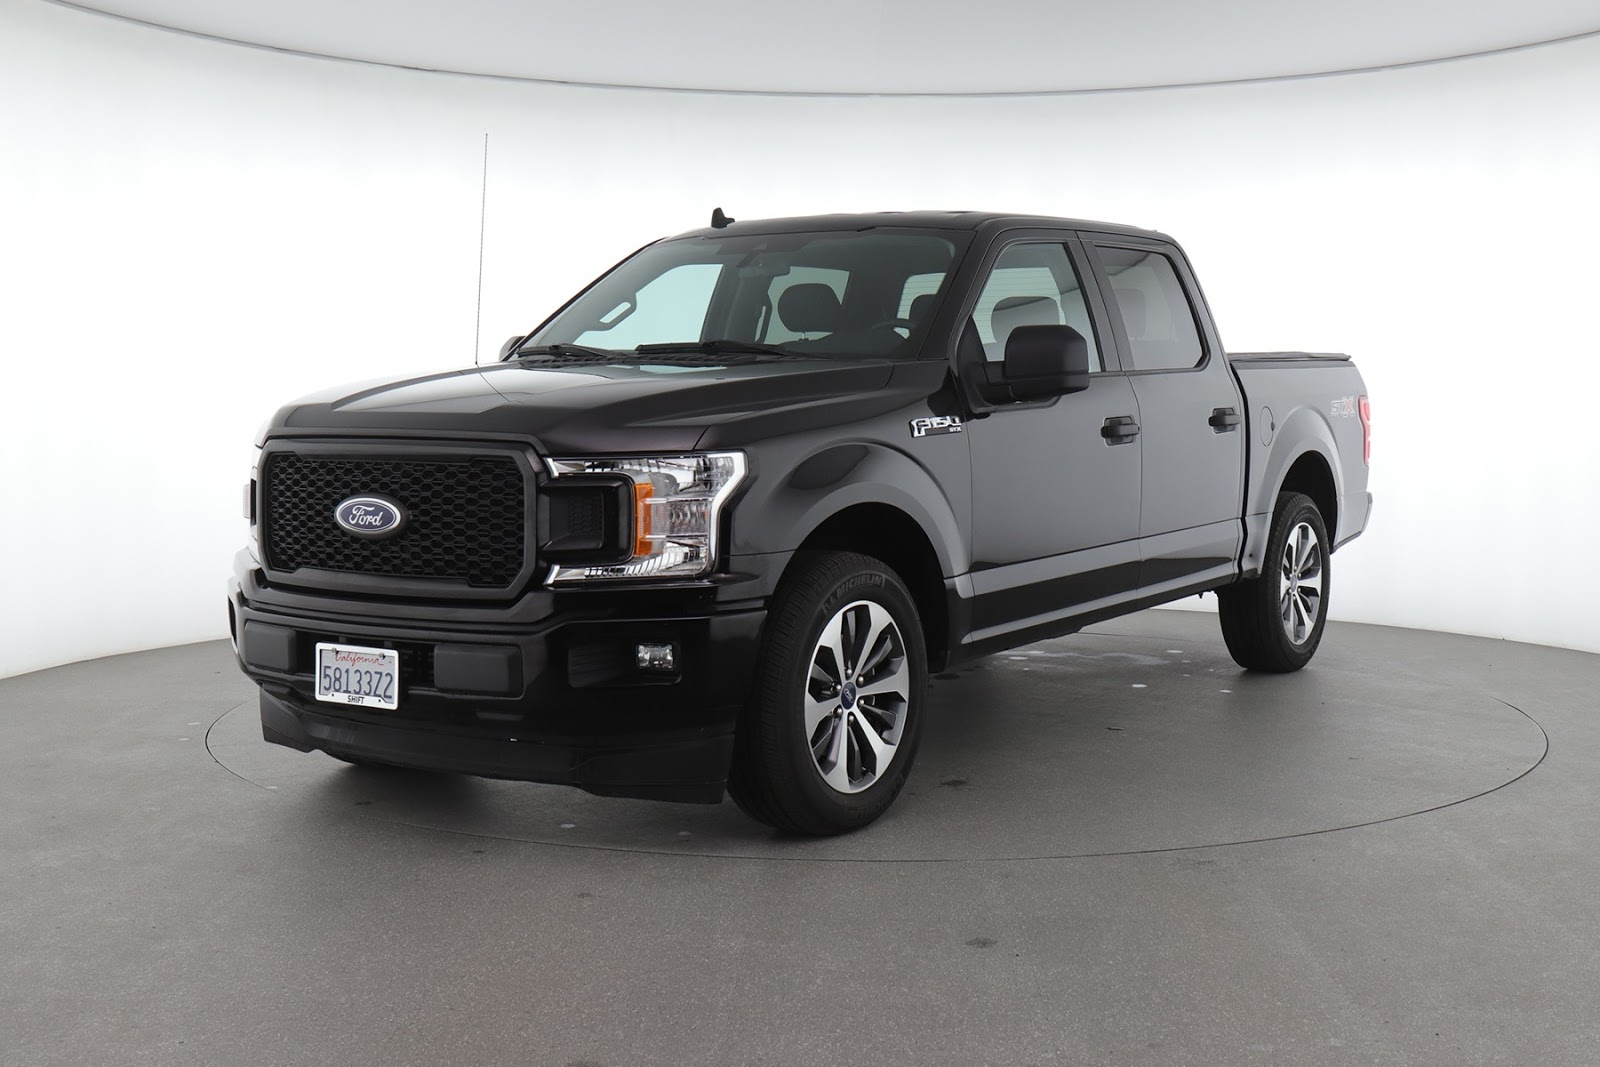 2020 Ford F-150 XL (from $37,950)